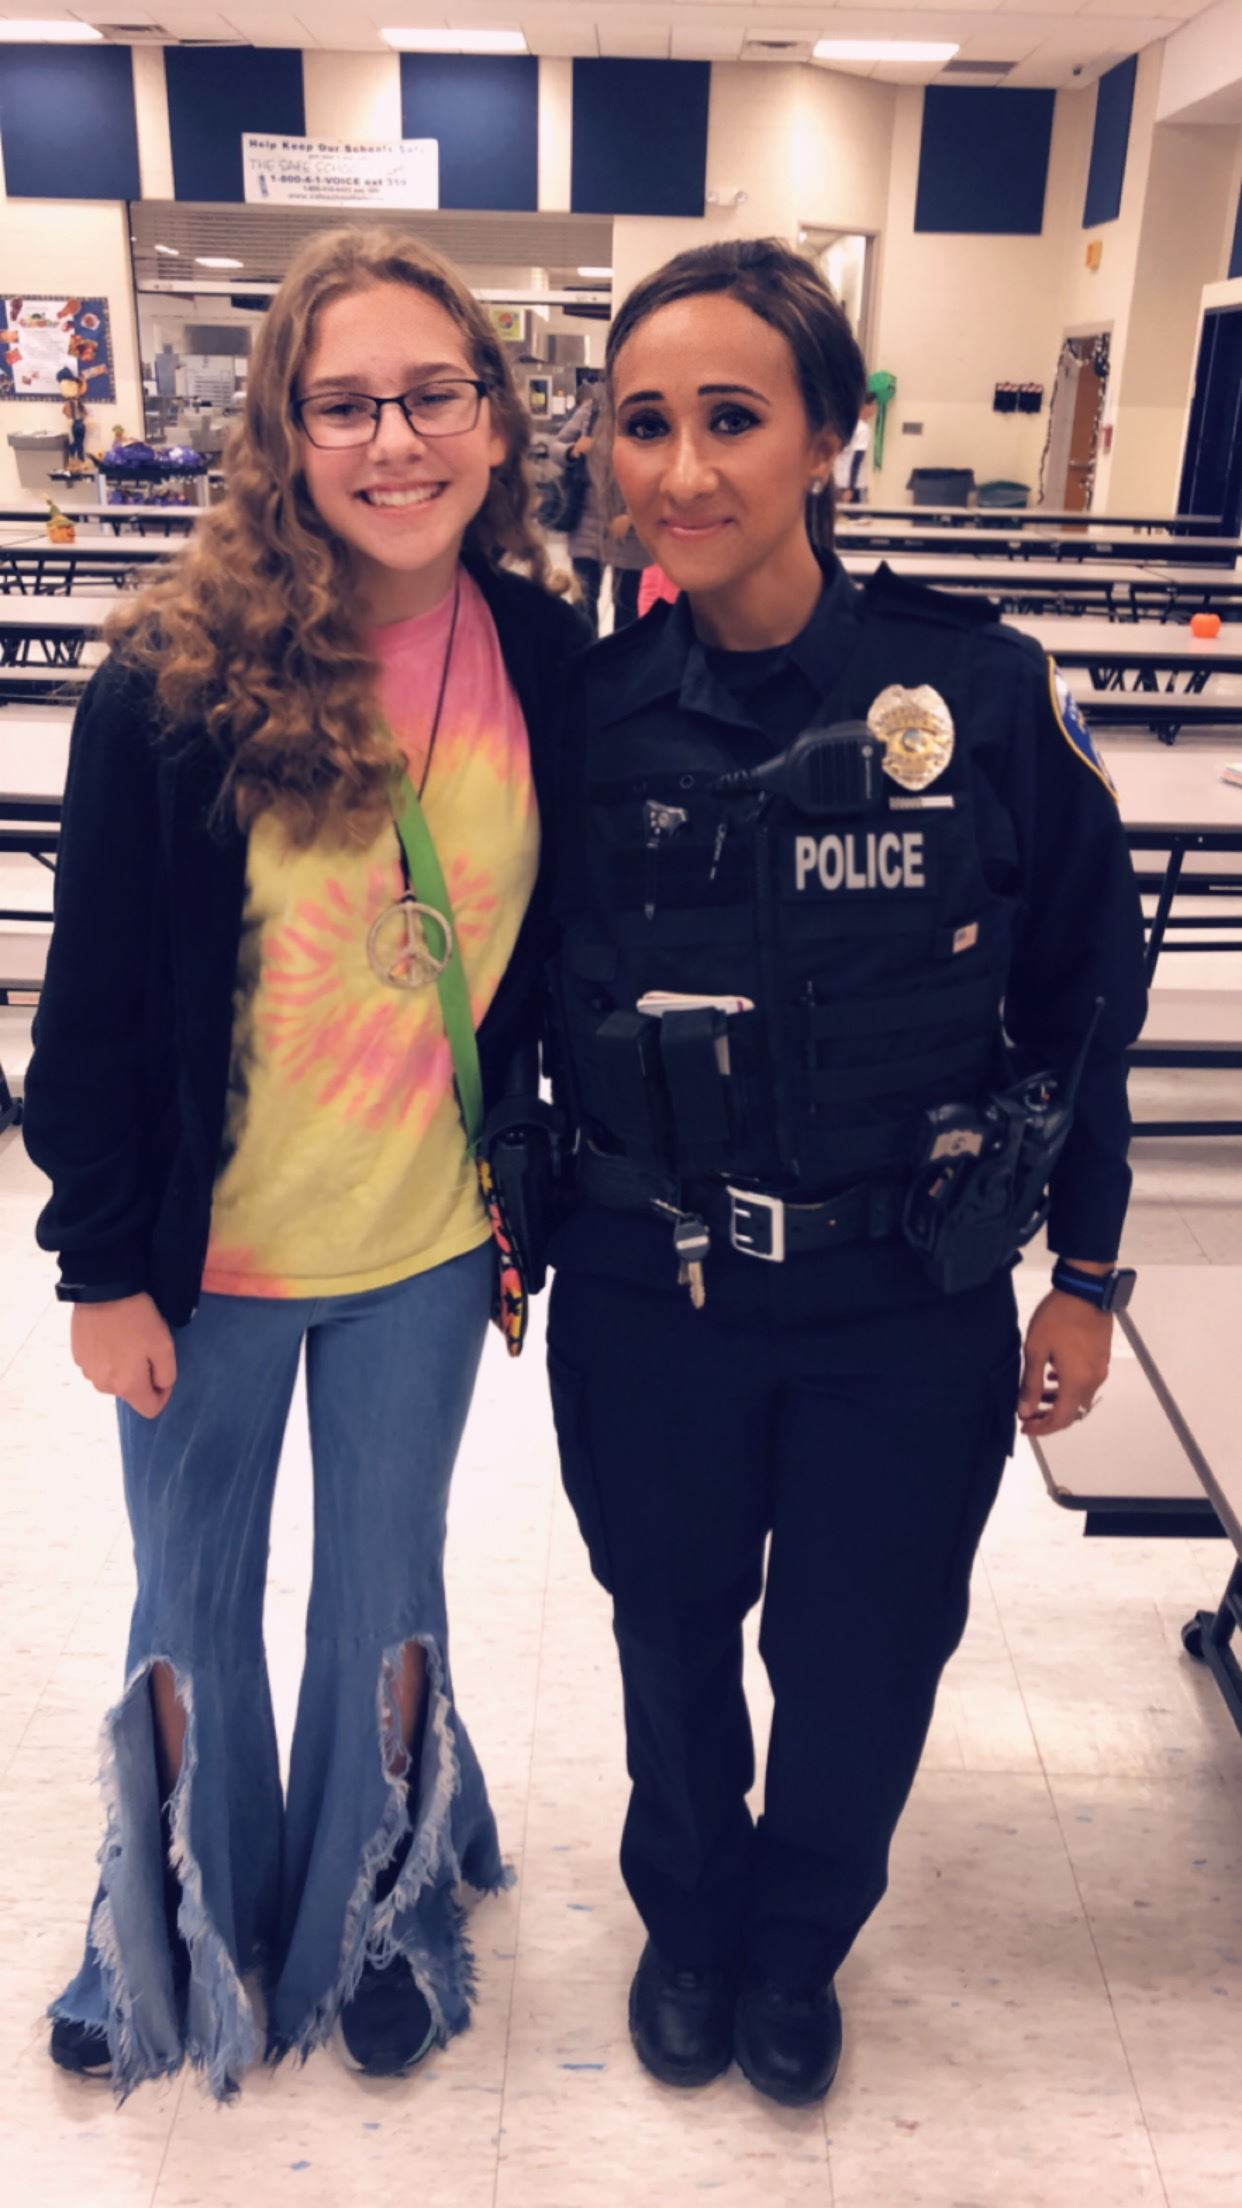 Officer Shendy and Samantha